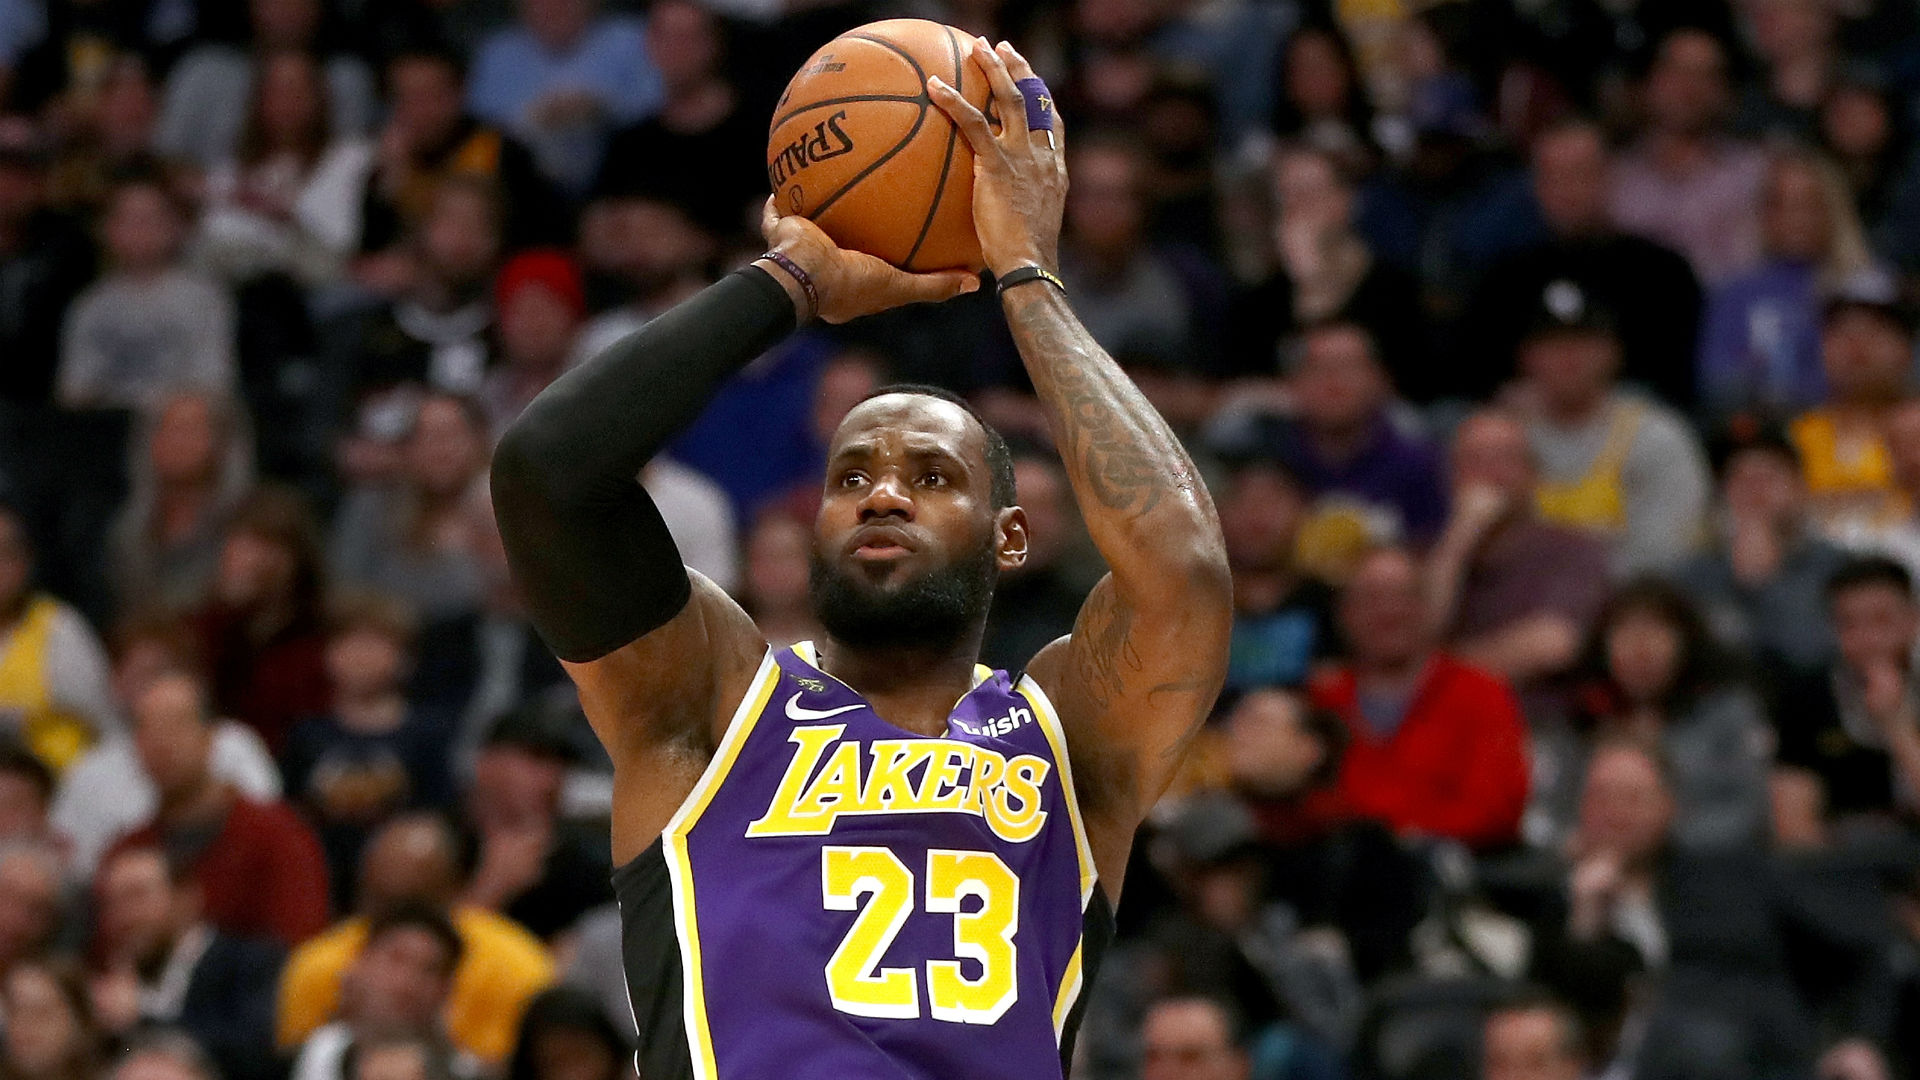 As long as LeBron James keeps hitting this magic number, the Lakers will win forever - sporting news